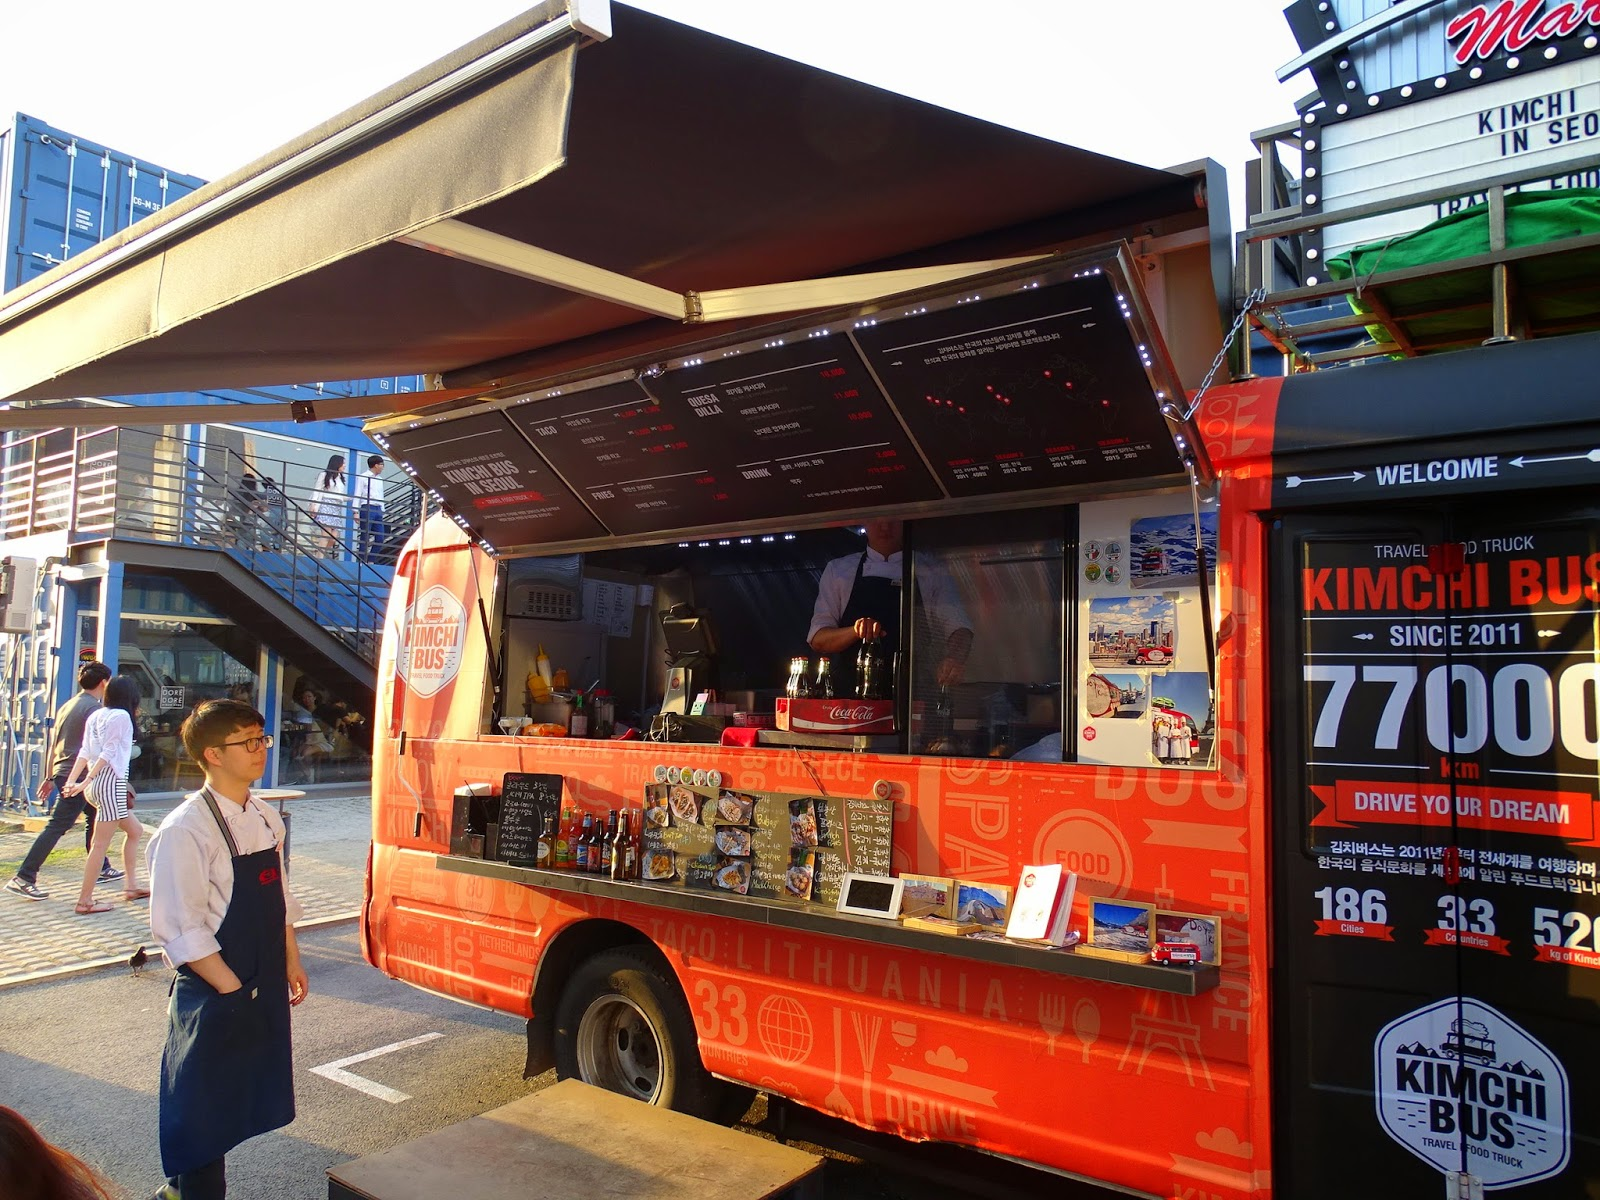 This Famous Food Truck Offers A Small Variety Of Mexican Mainly Tacos With Korean Twist